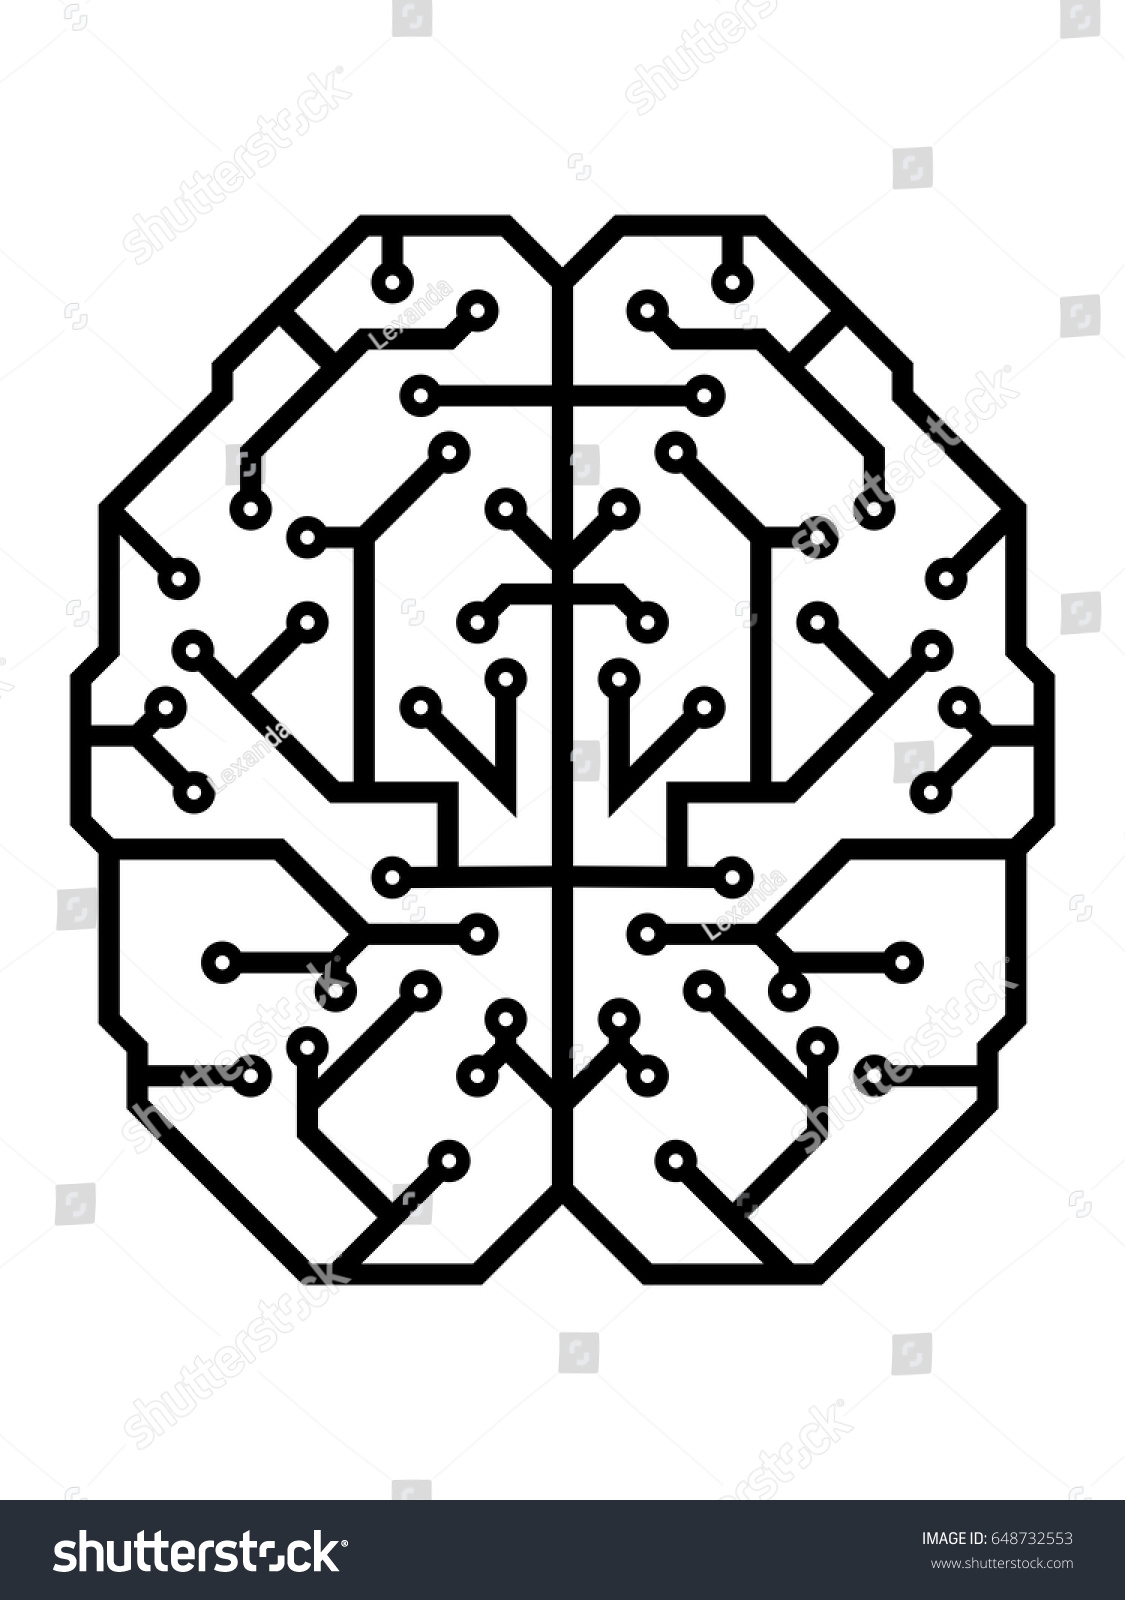 Mind as an electric printed circuit board. Printed wiring board in a human brain form  sc 1 st  Shutterstock : wiring brain - yogabreezes.com